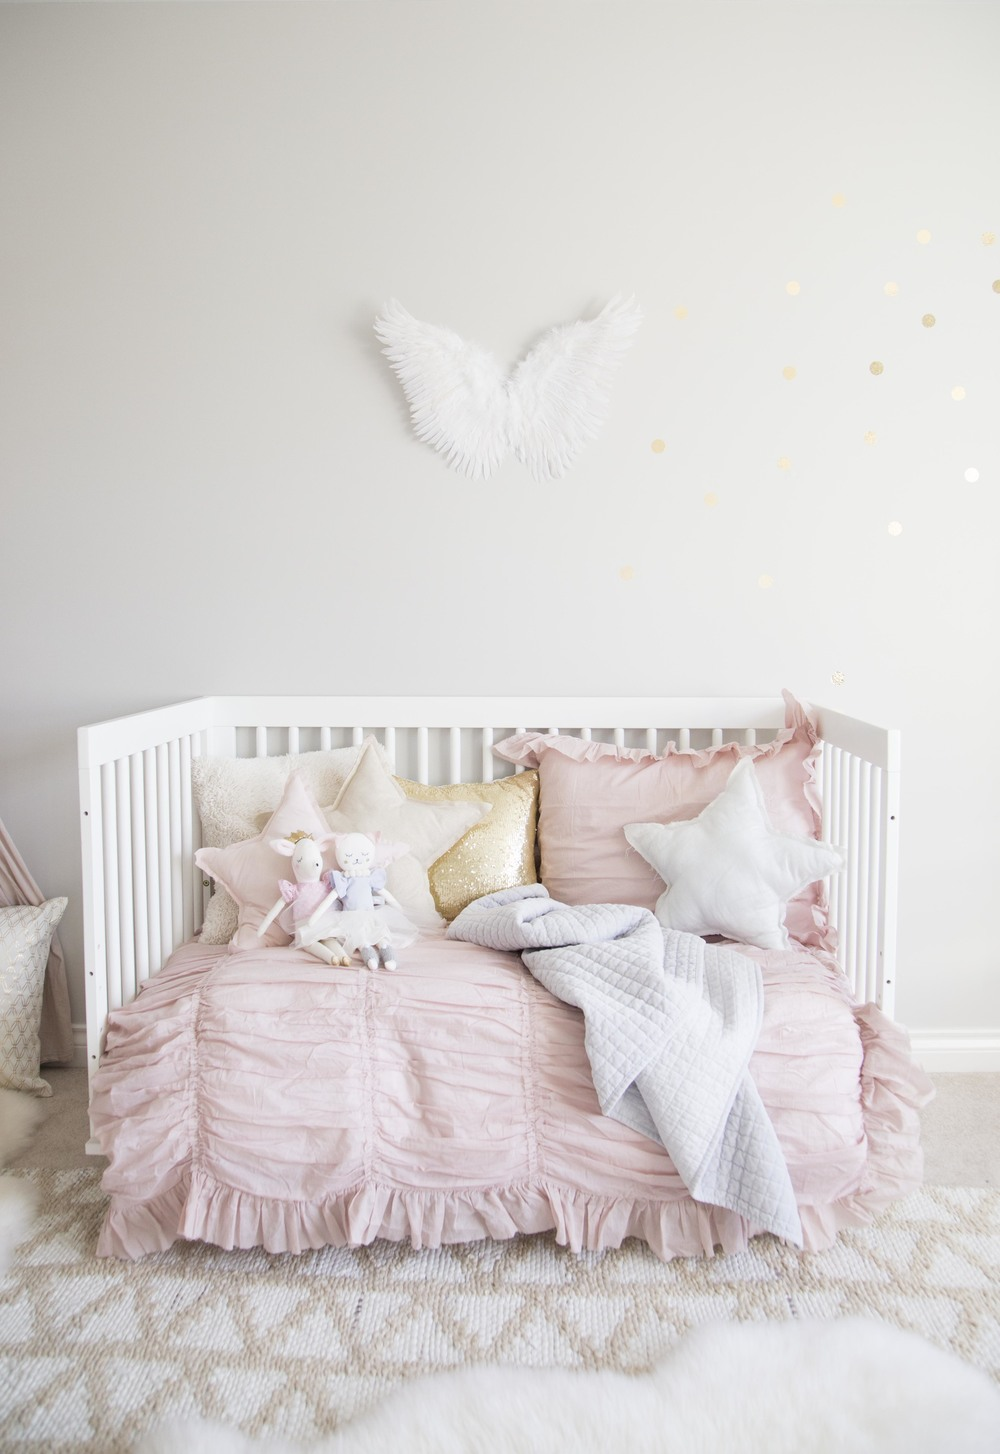 ELLAS SOFT PINK AND GOLD TODDLER ROOM WINTER DAISY